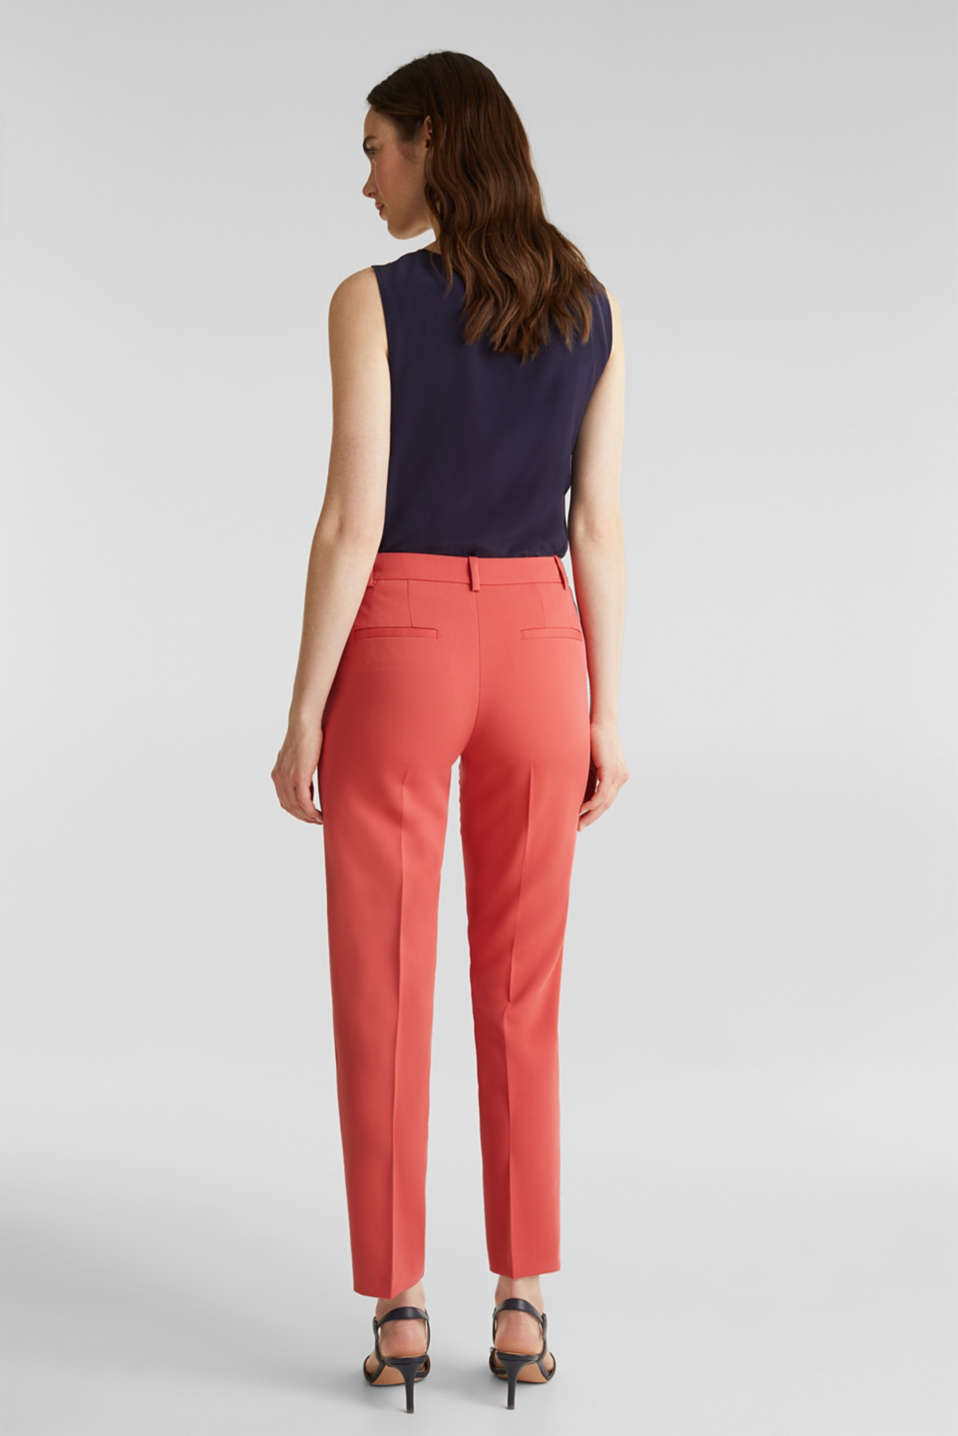 SPRING TWILL Mix + Match stretch trousers, TERRACOTTA, detail image number 3